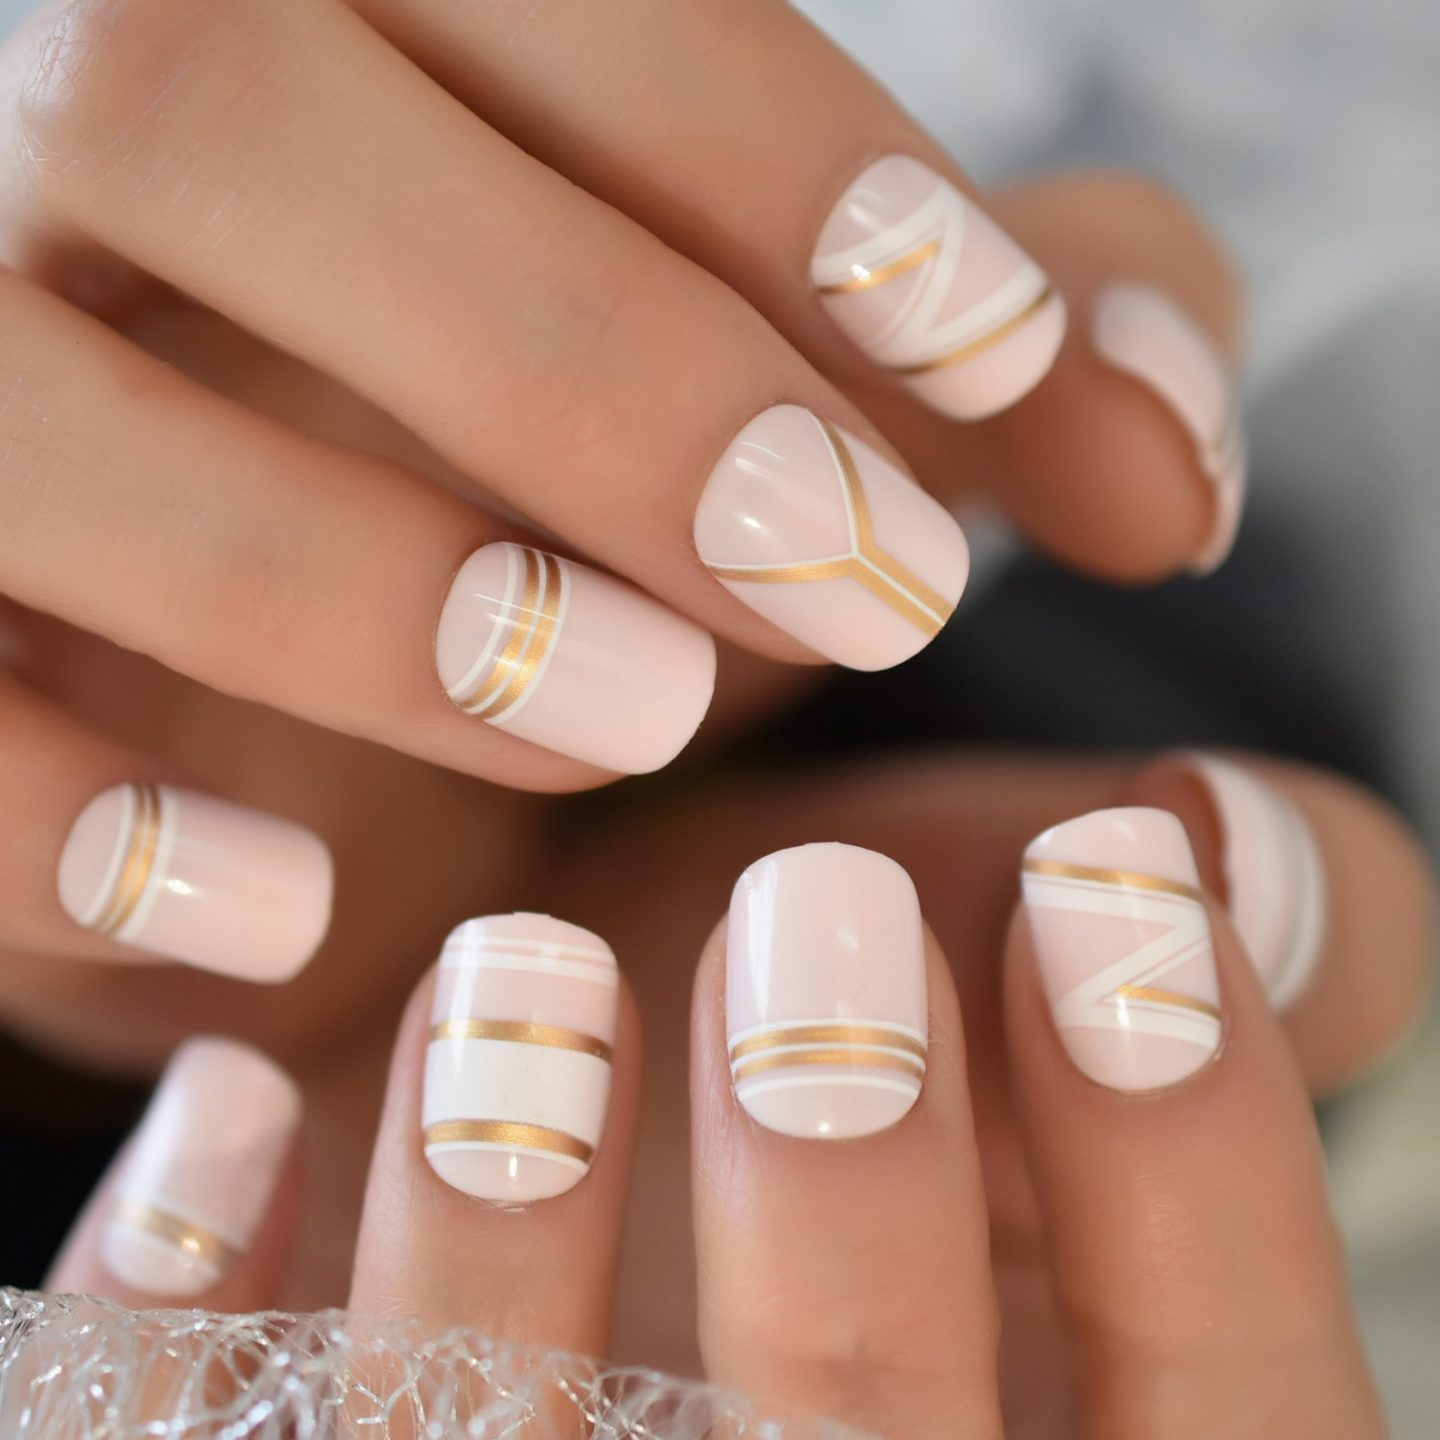 Cute short pink nails with gold and white nail art